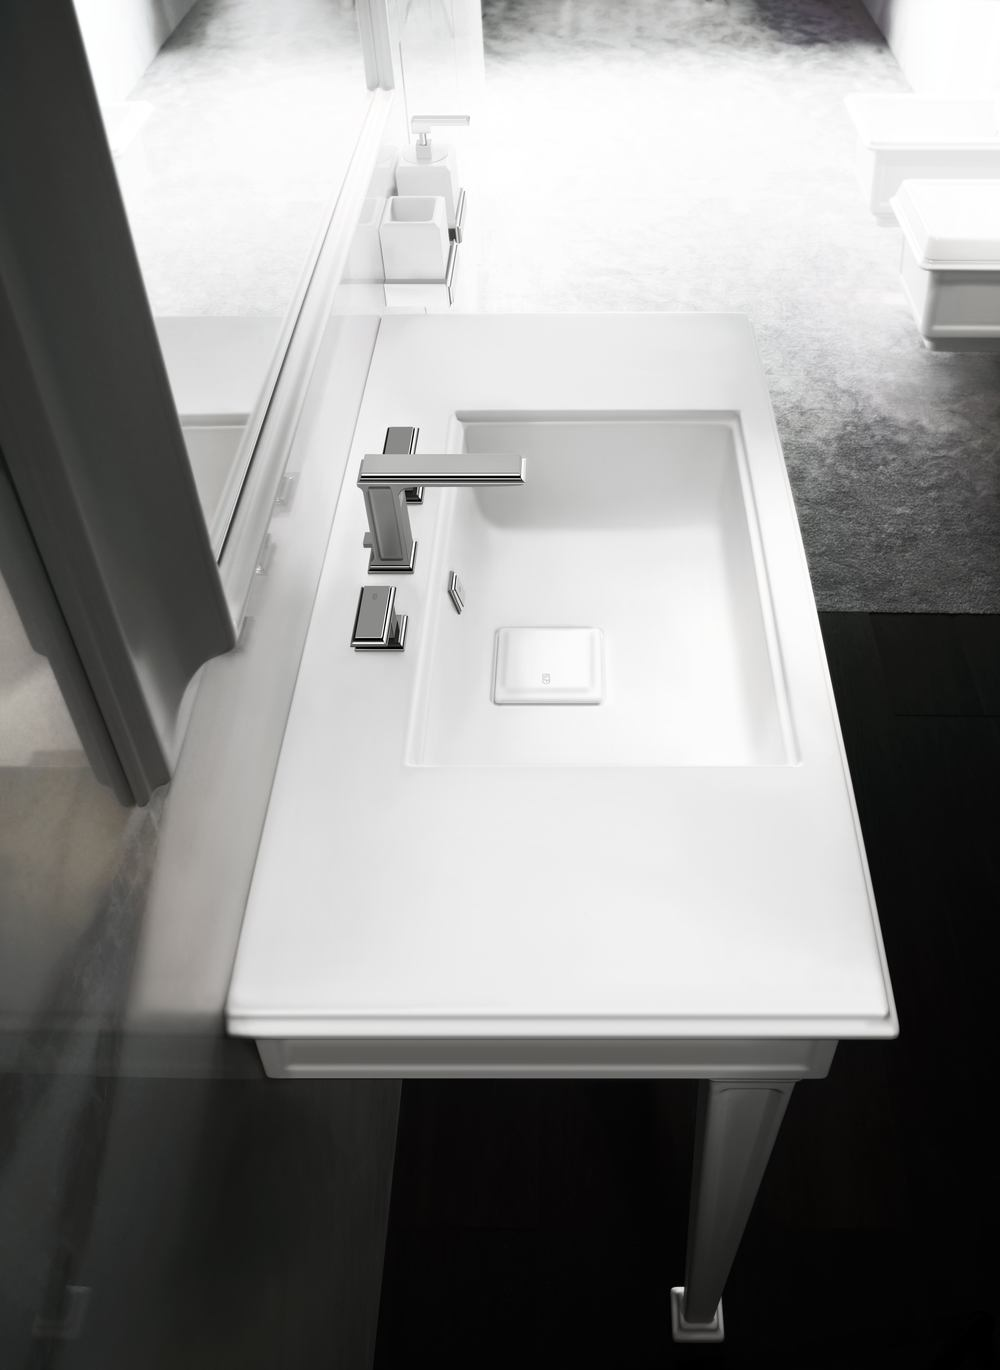 Fascino Gessi console lav top view.jpg